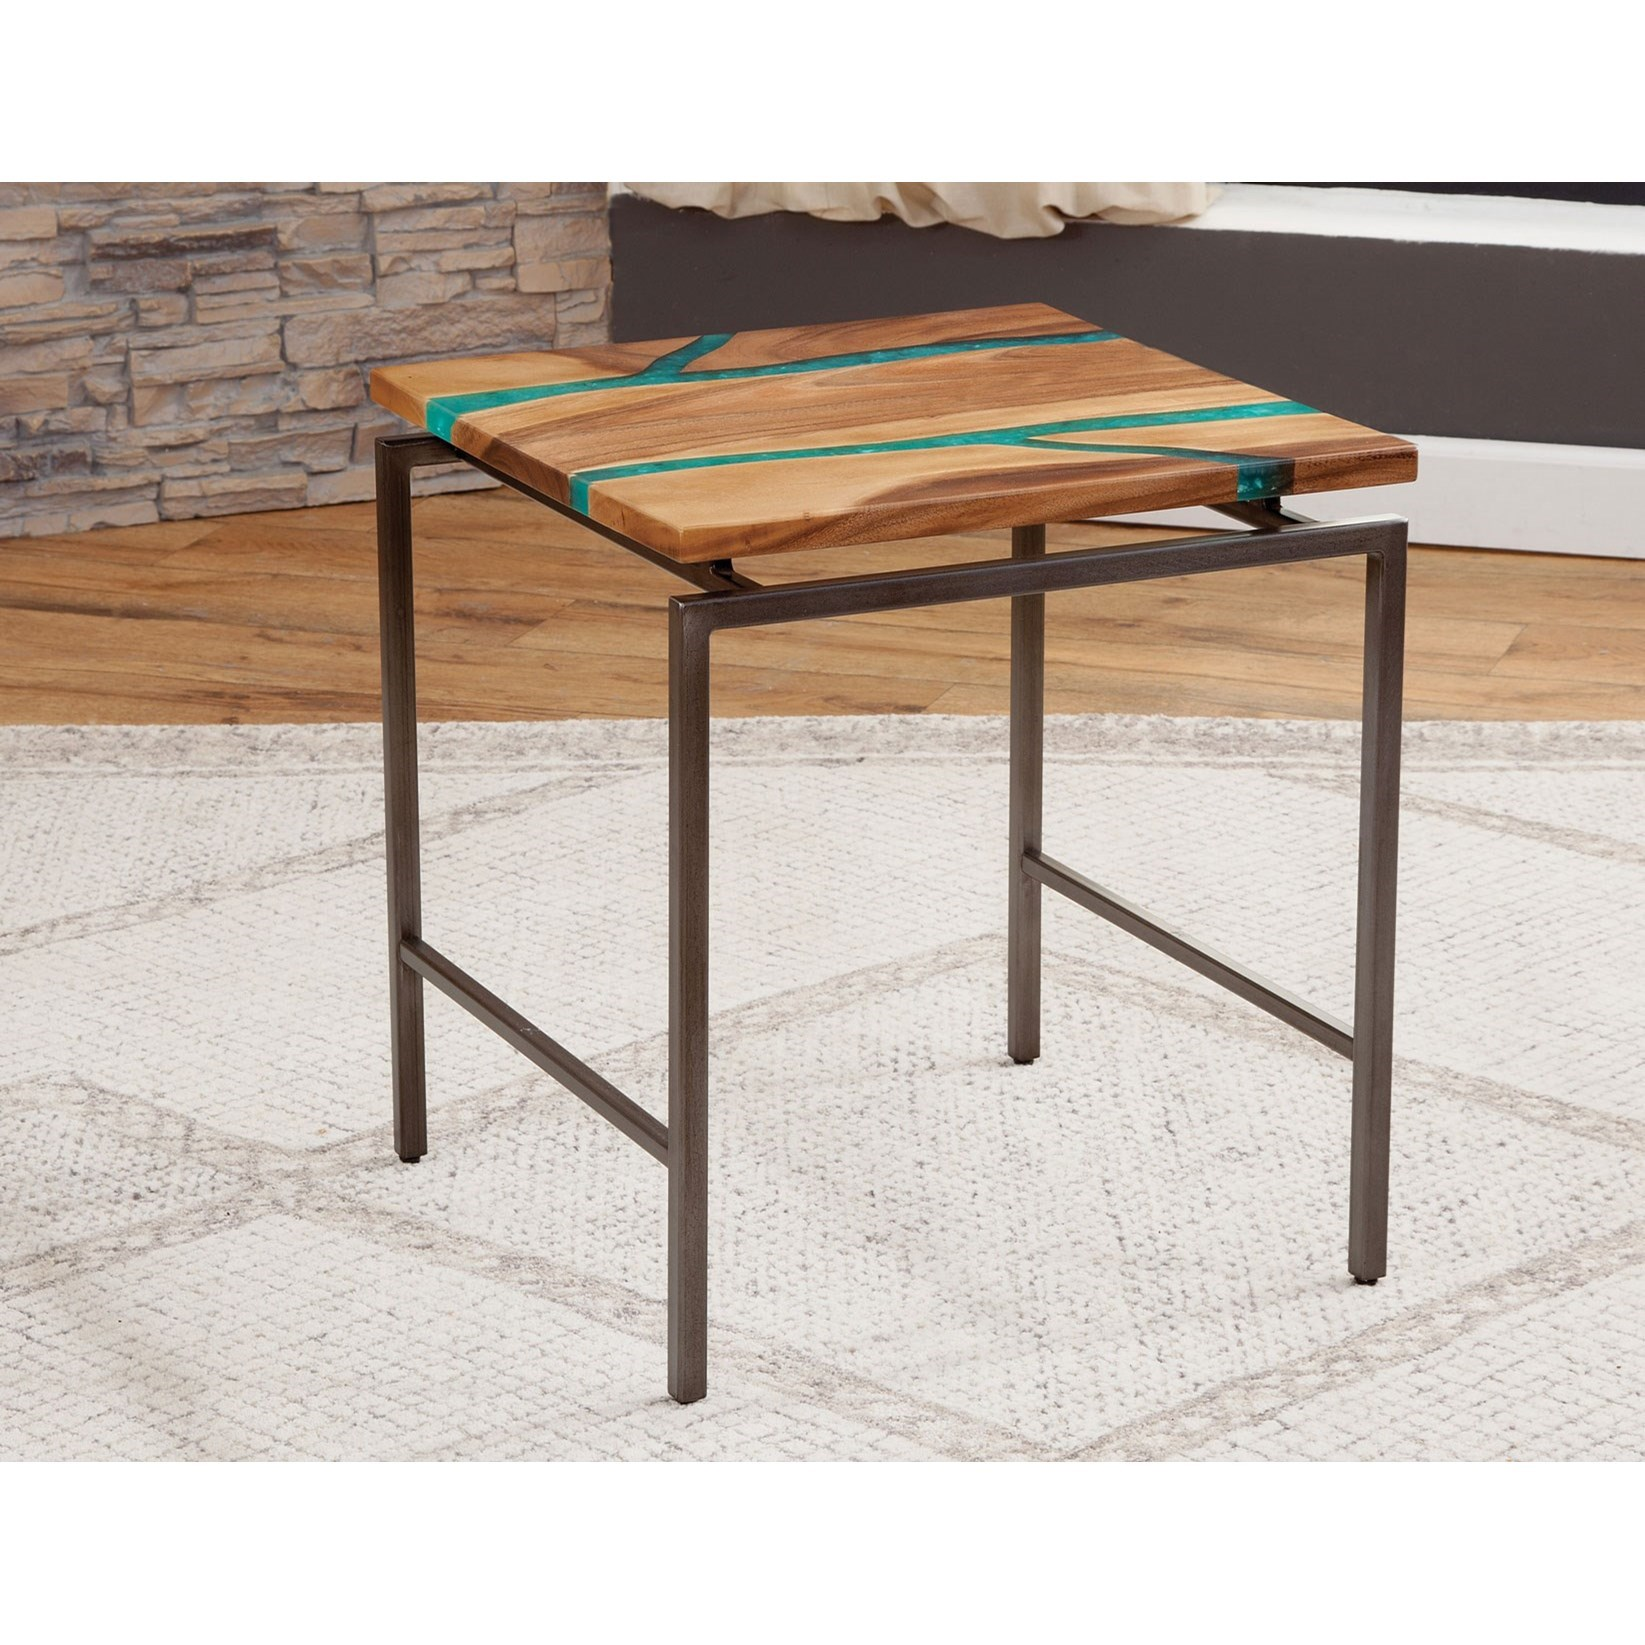 Tamra End Table by Steve Silver at Walker's Furniture